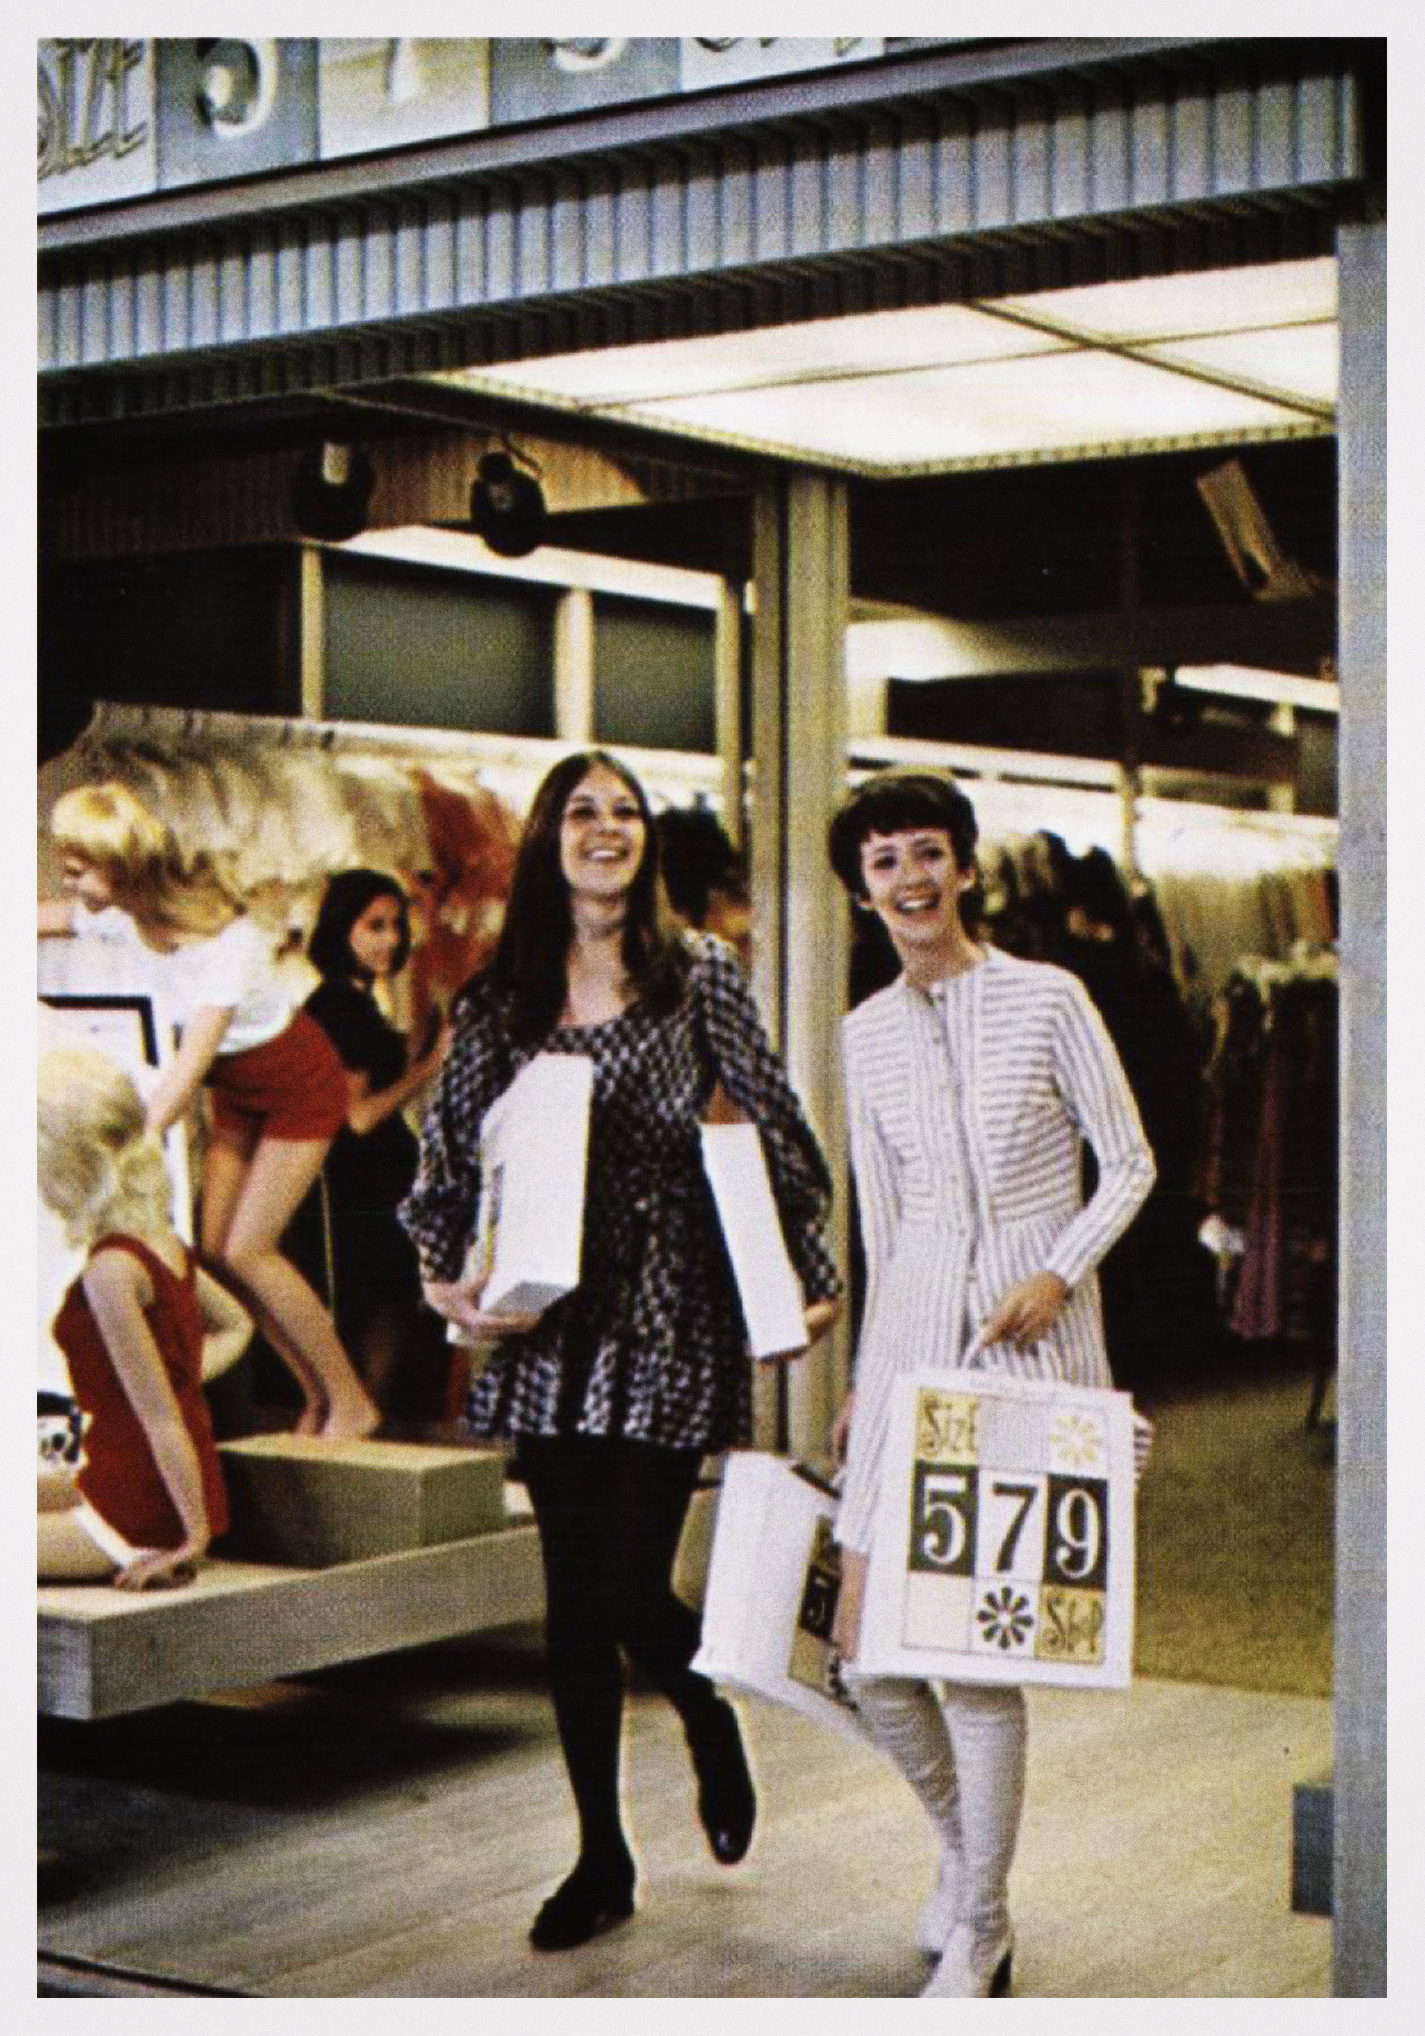 Shopping at 5-7-9 in the 70s